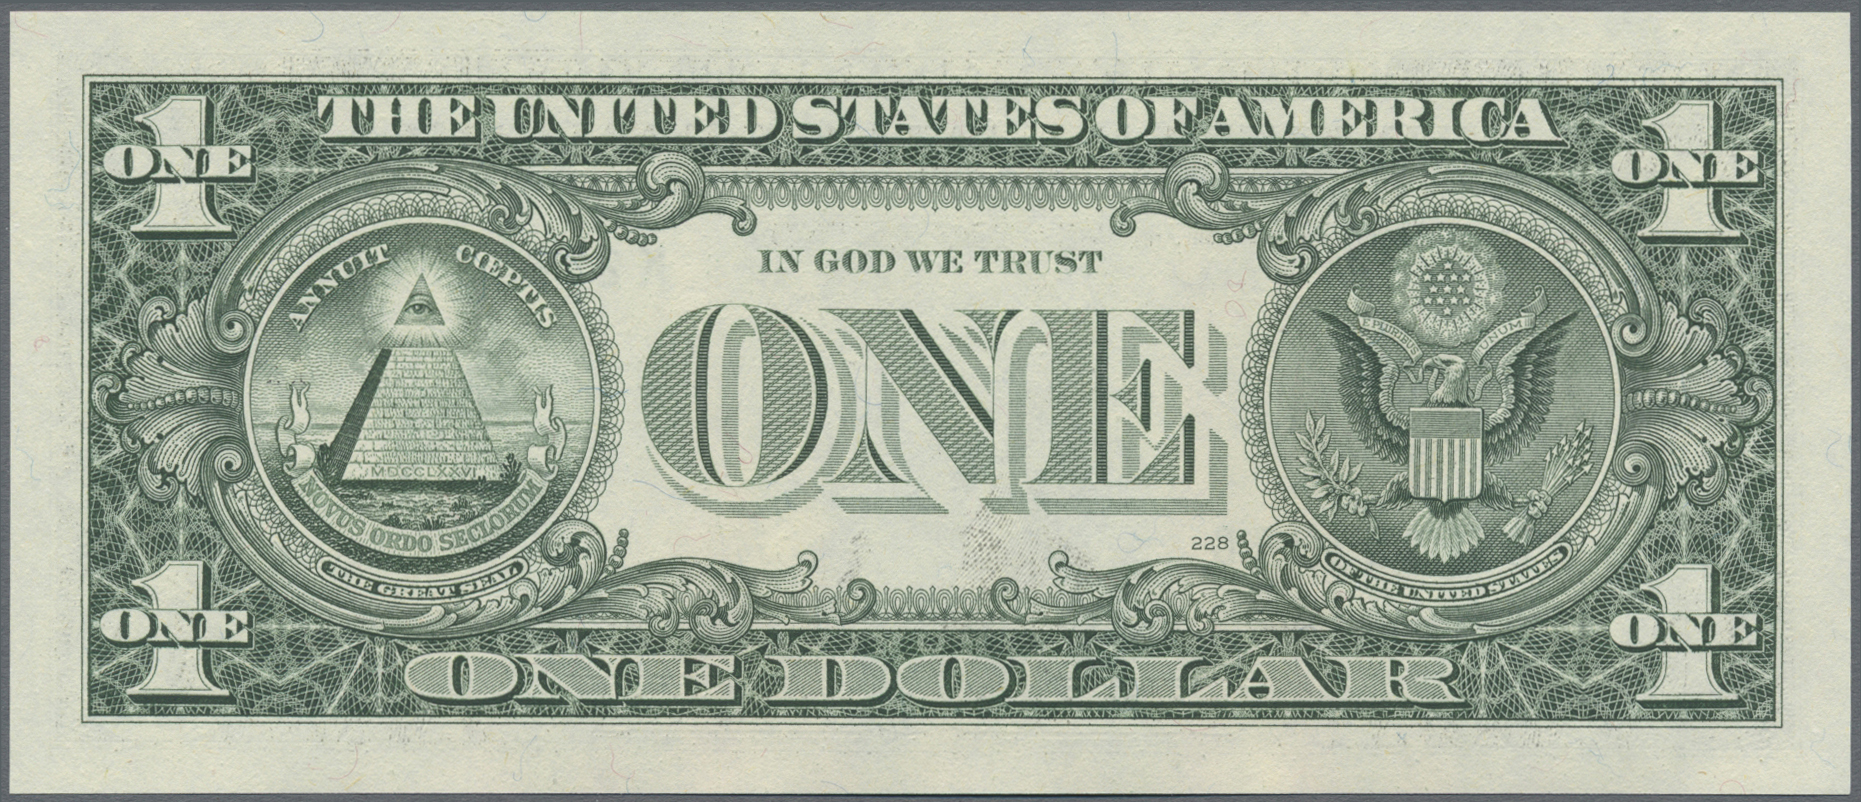 Lot 00909 - United States of America | Banknoten  -  Auktionshaus Christoph Gärtner GmbH & Co. KG Sale #48 The Banknotes